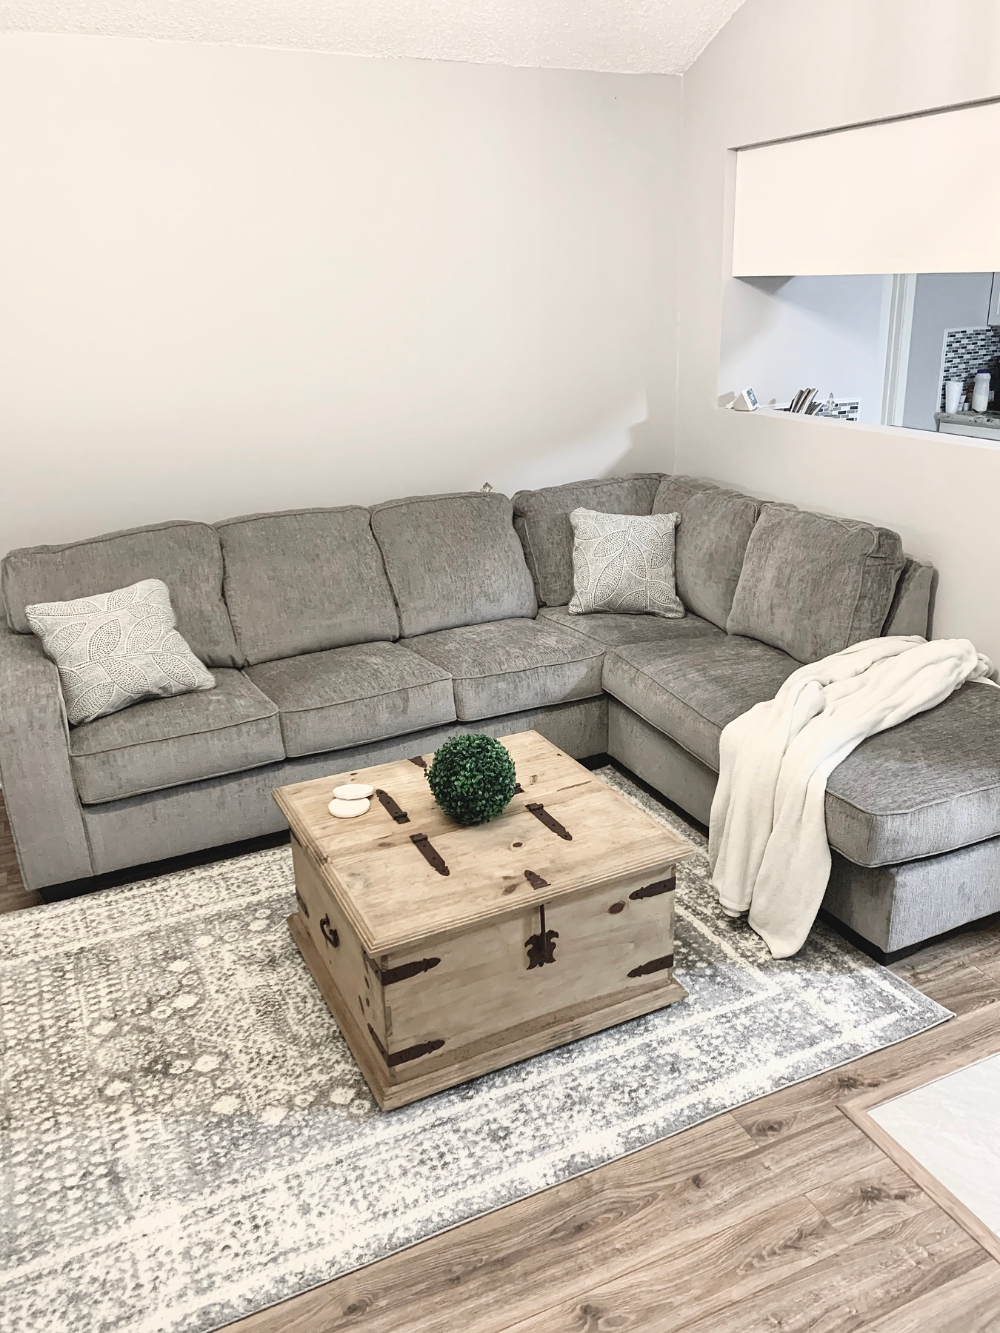 Altari 2 Piece Sectional With Chaise Ashley Furniture Homestore In 2021 Sectional Living Room Decor Ashley Furniture Ashley Furniture Homestore